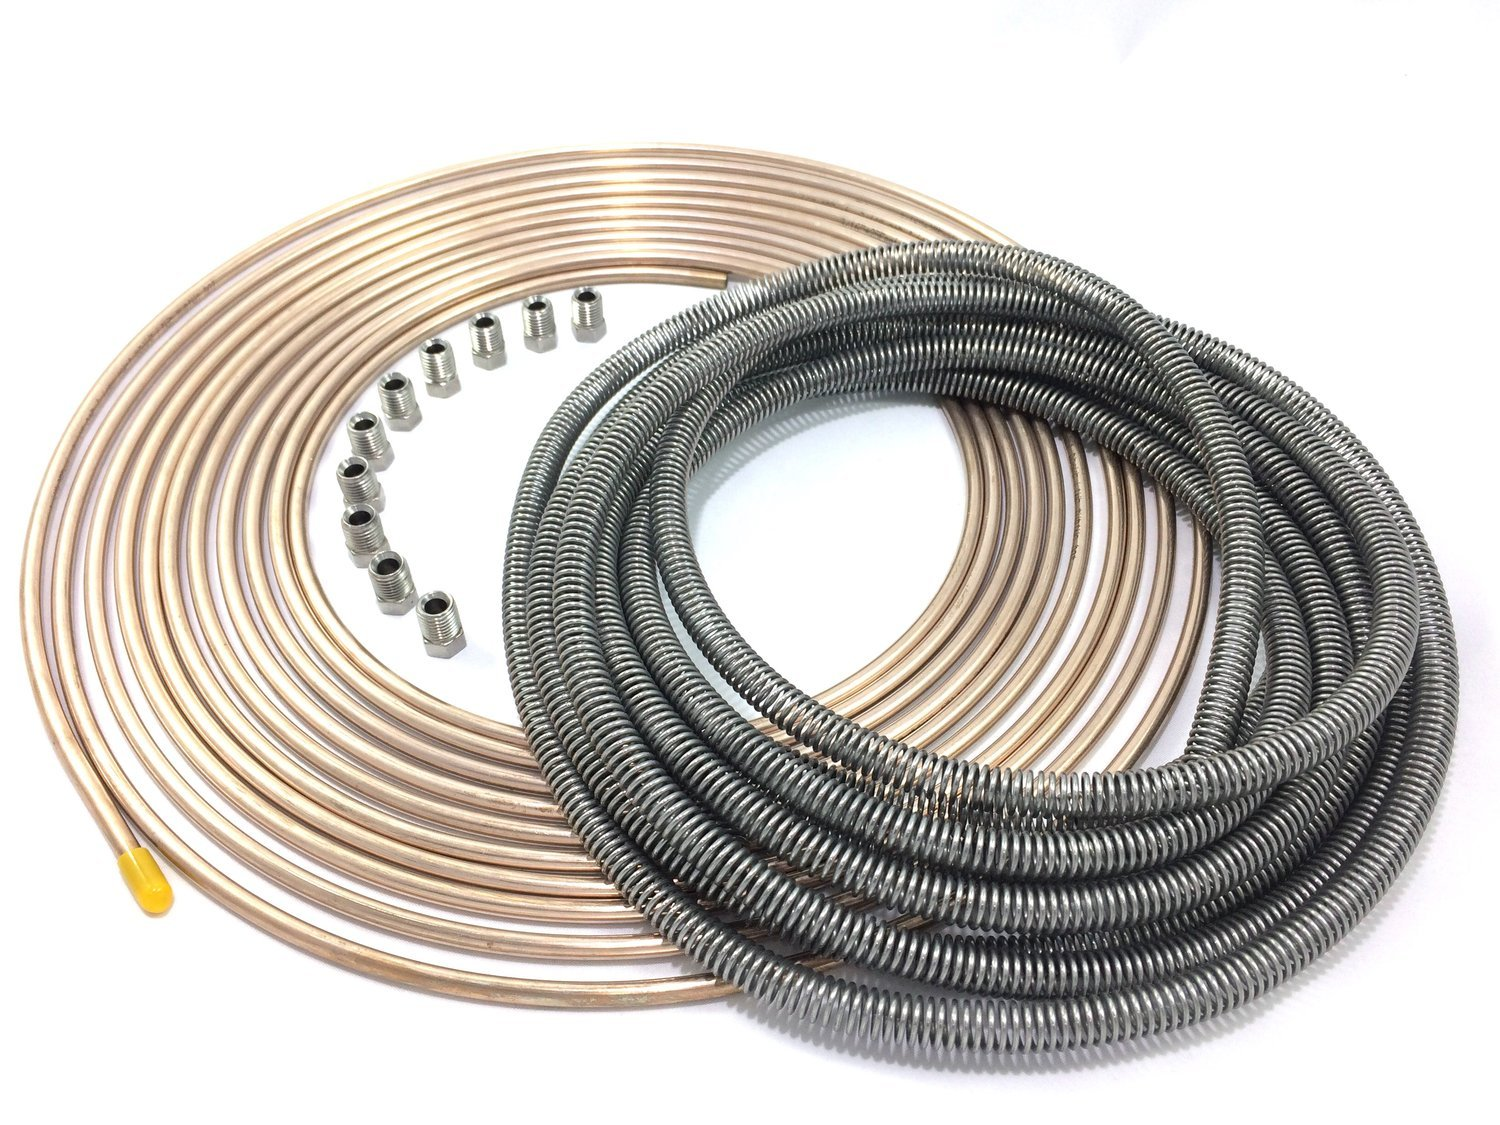 of 1//4 Copper Nickel Tubing with 8 Ft of Stainless Armor and Stainless Fittings 25 Ft